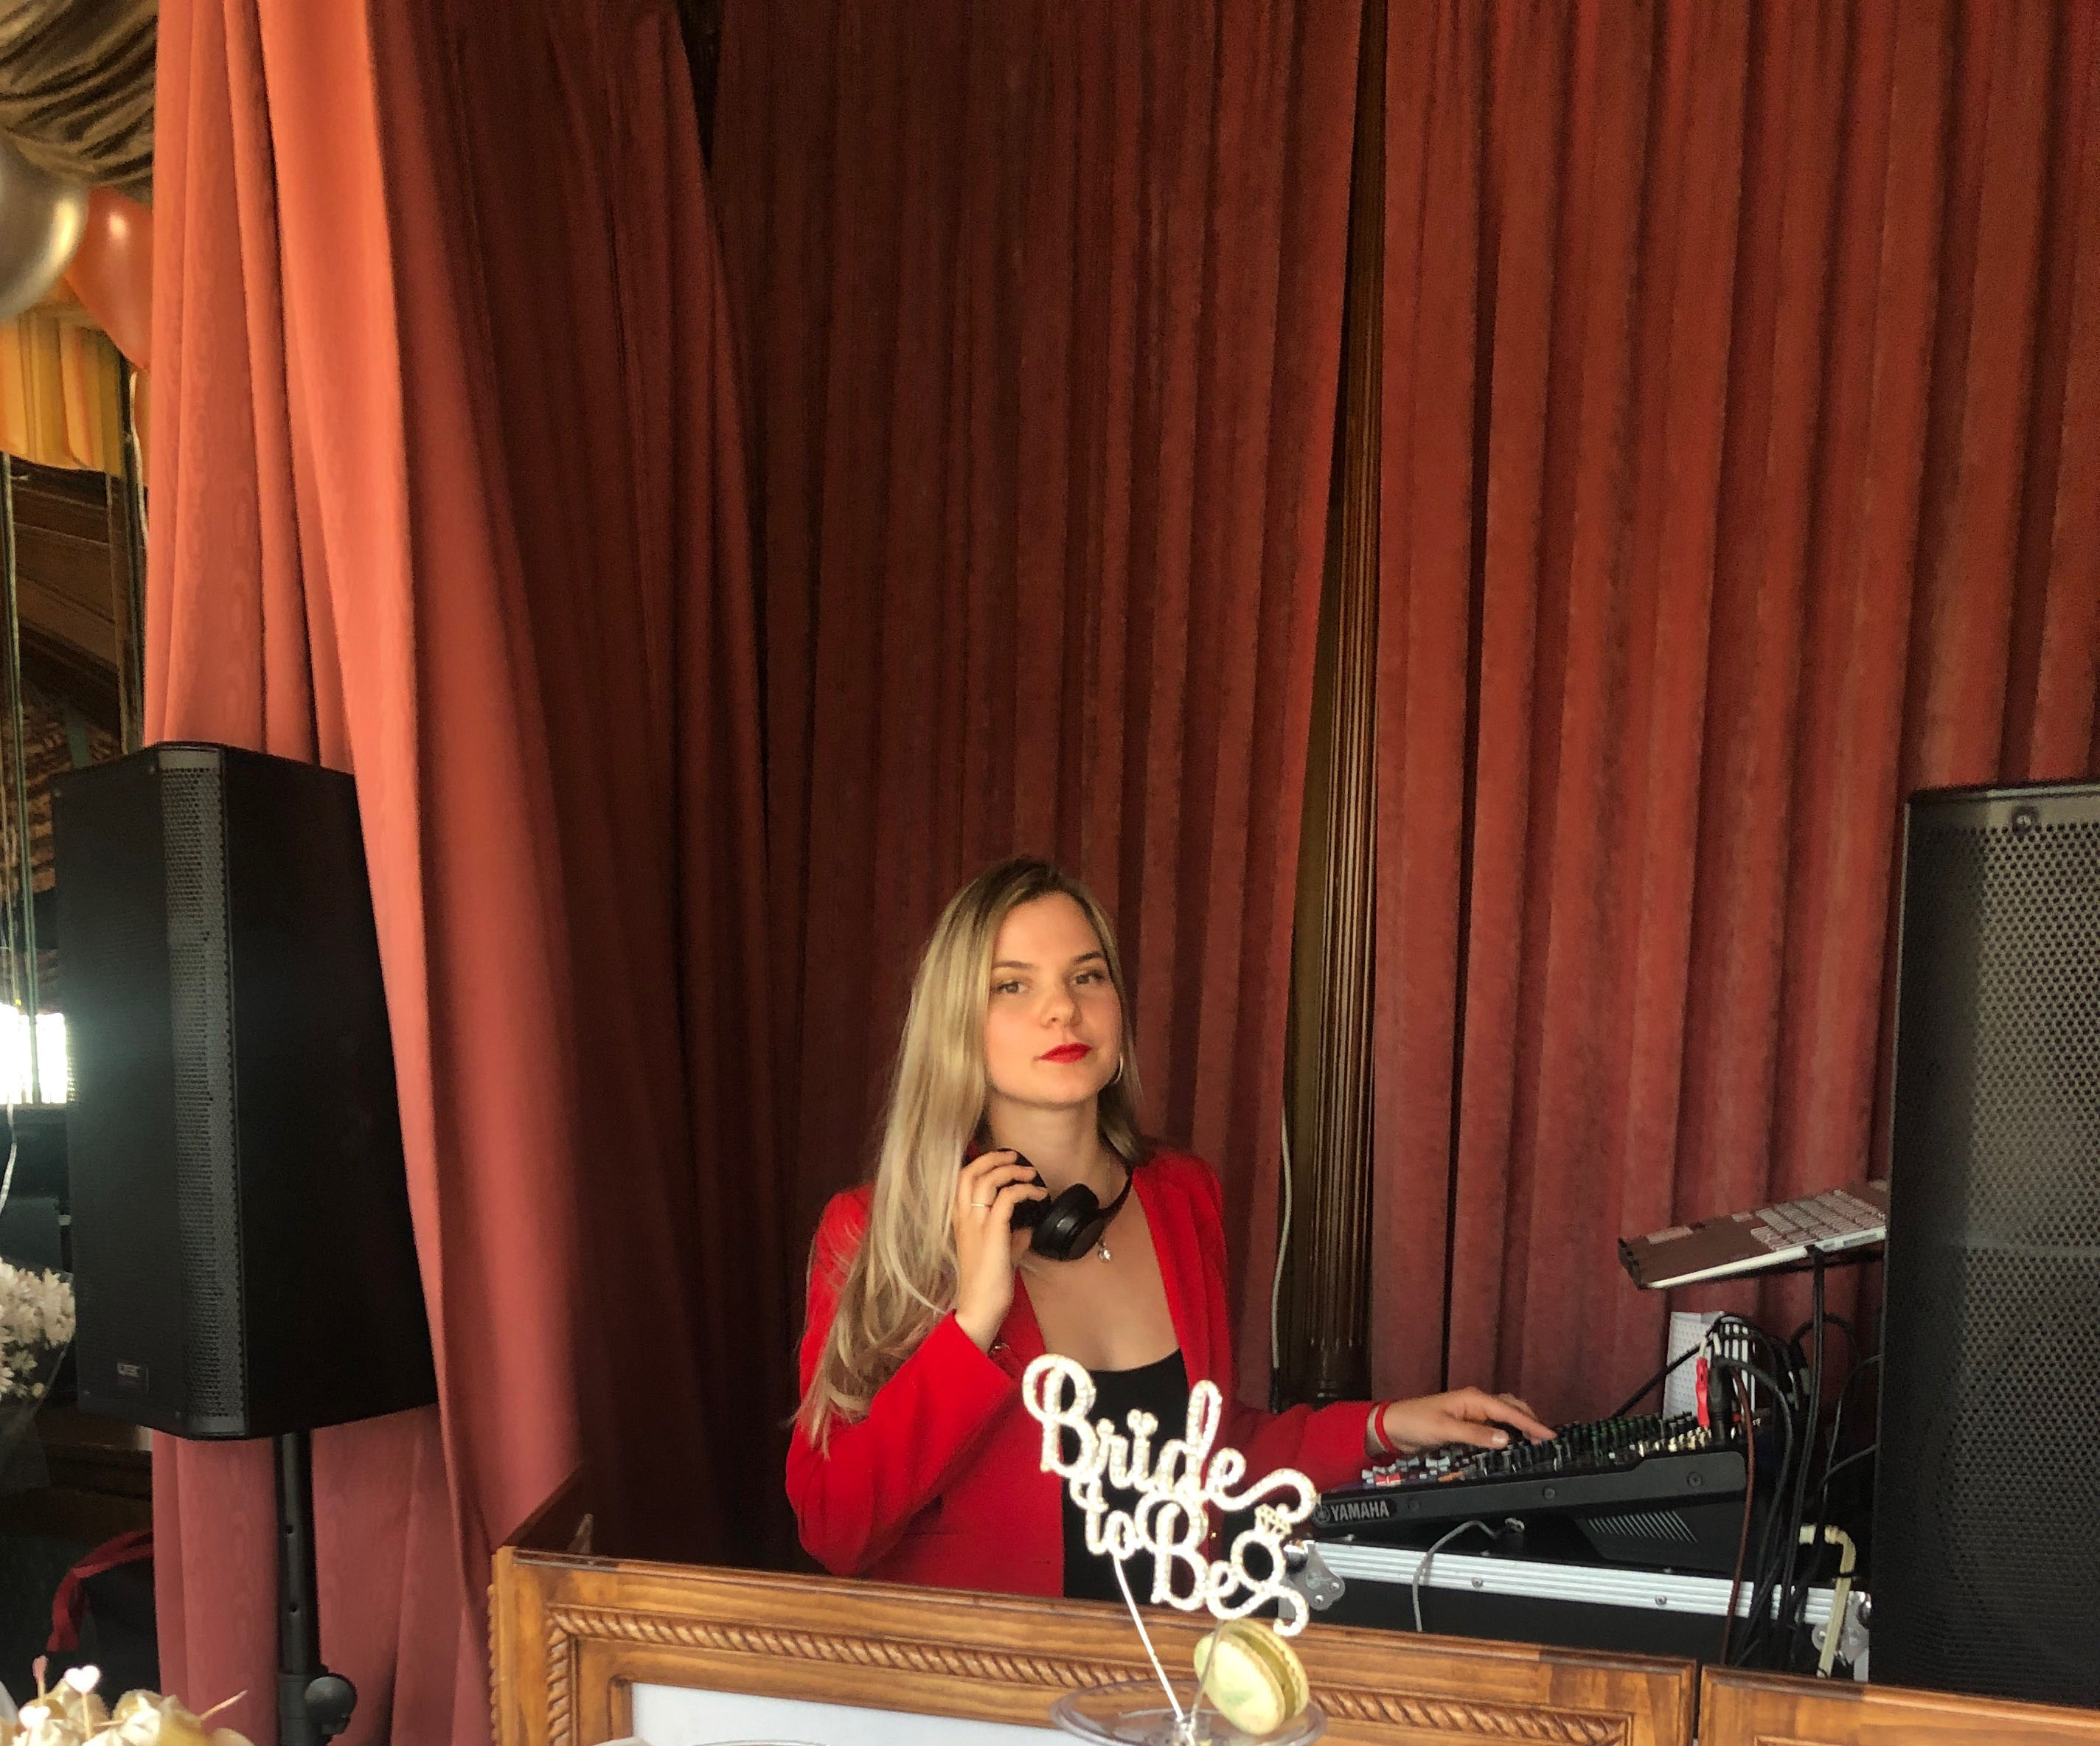 Russian DJ Alisa, bachelorette party, West Manor Catering and Event Space, West Orange, New Jersey, 06-30-2019